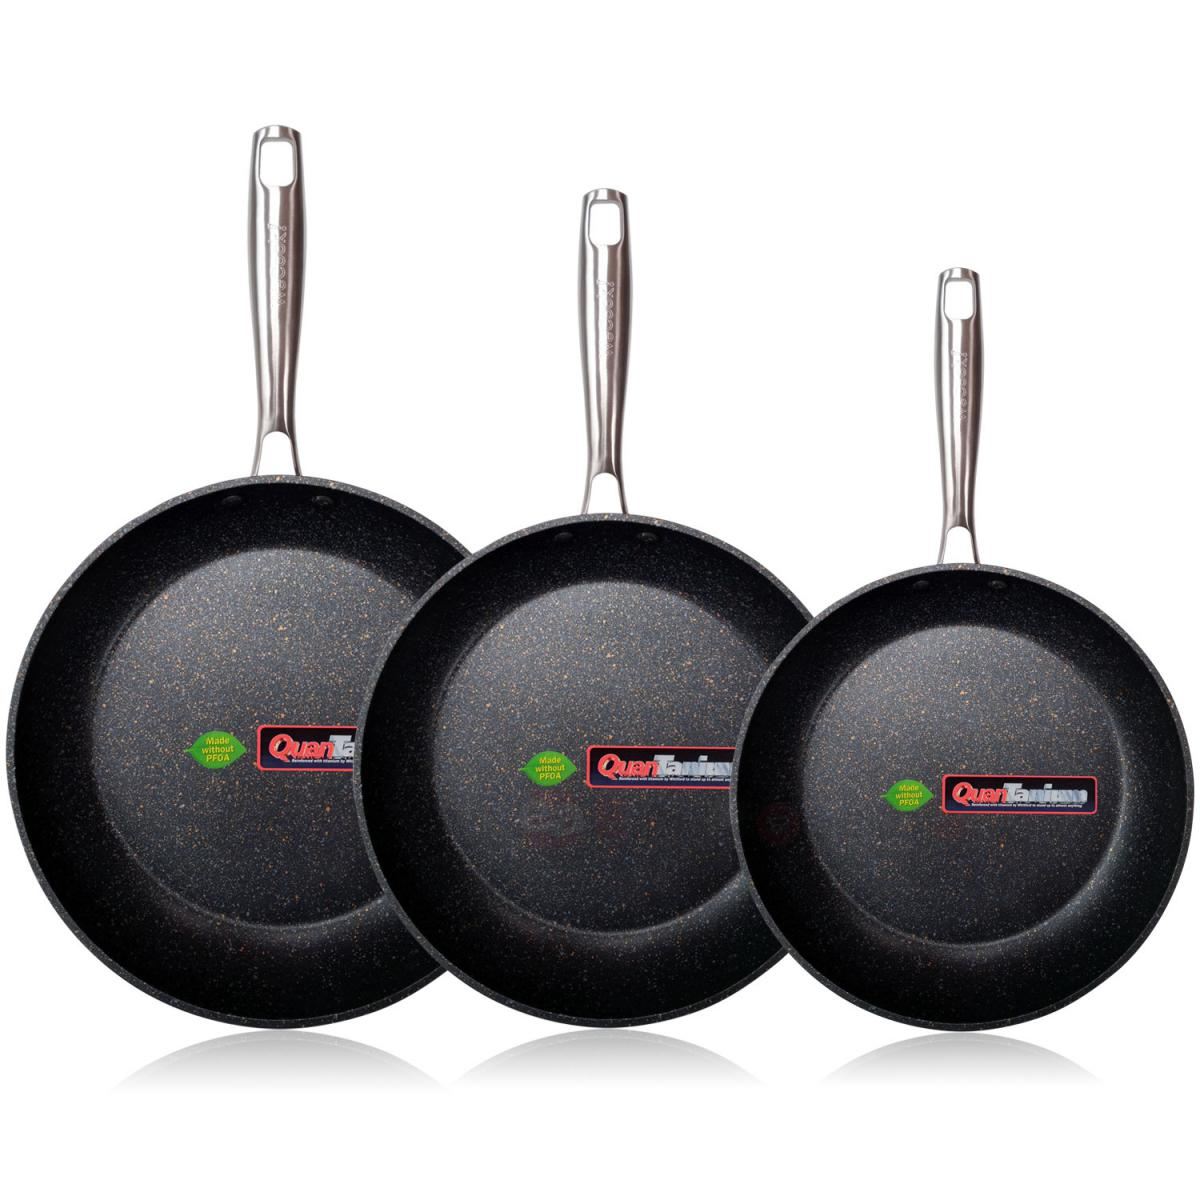 Icook Lot de 3 casseroles 20-24-28cm Aluminium forgé induction Titane antiadhésif Wecook Ecochef